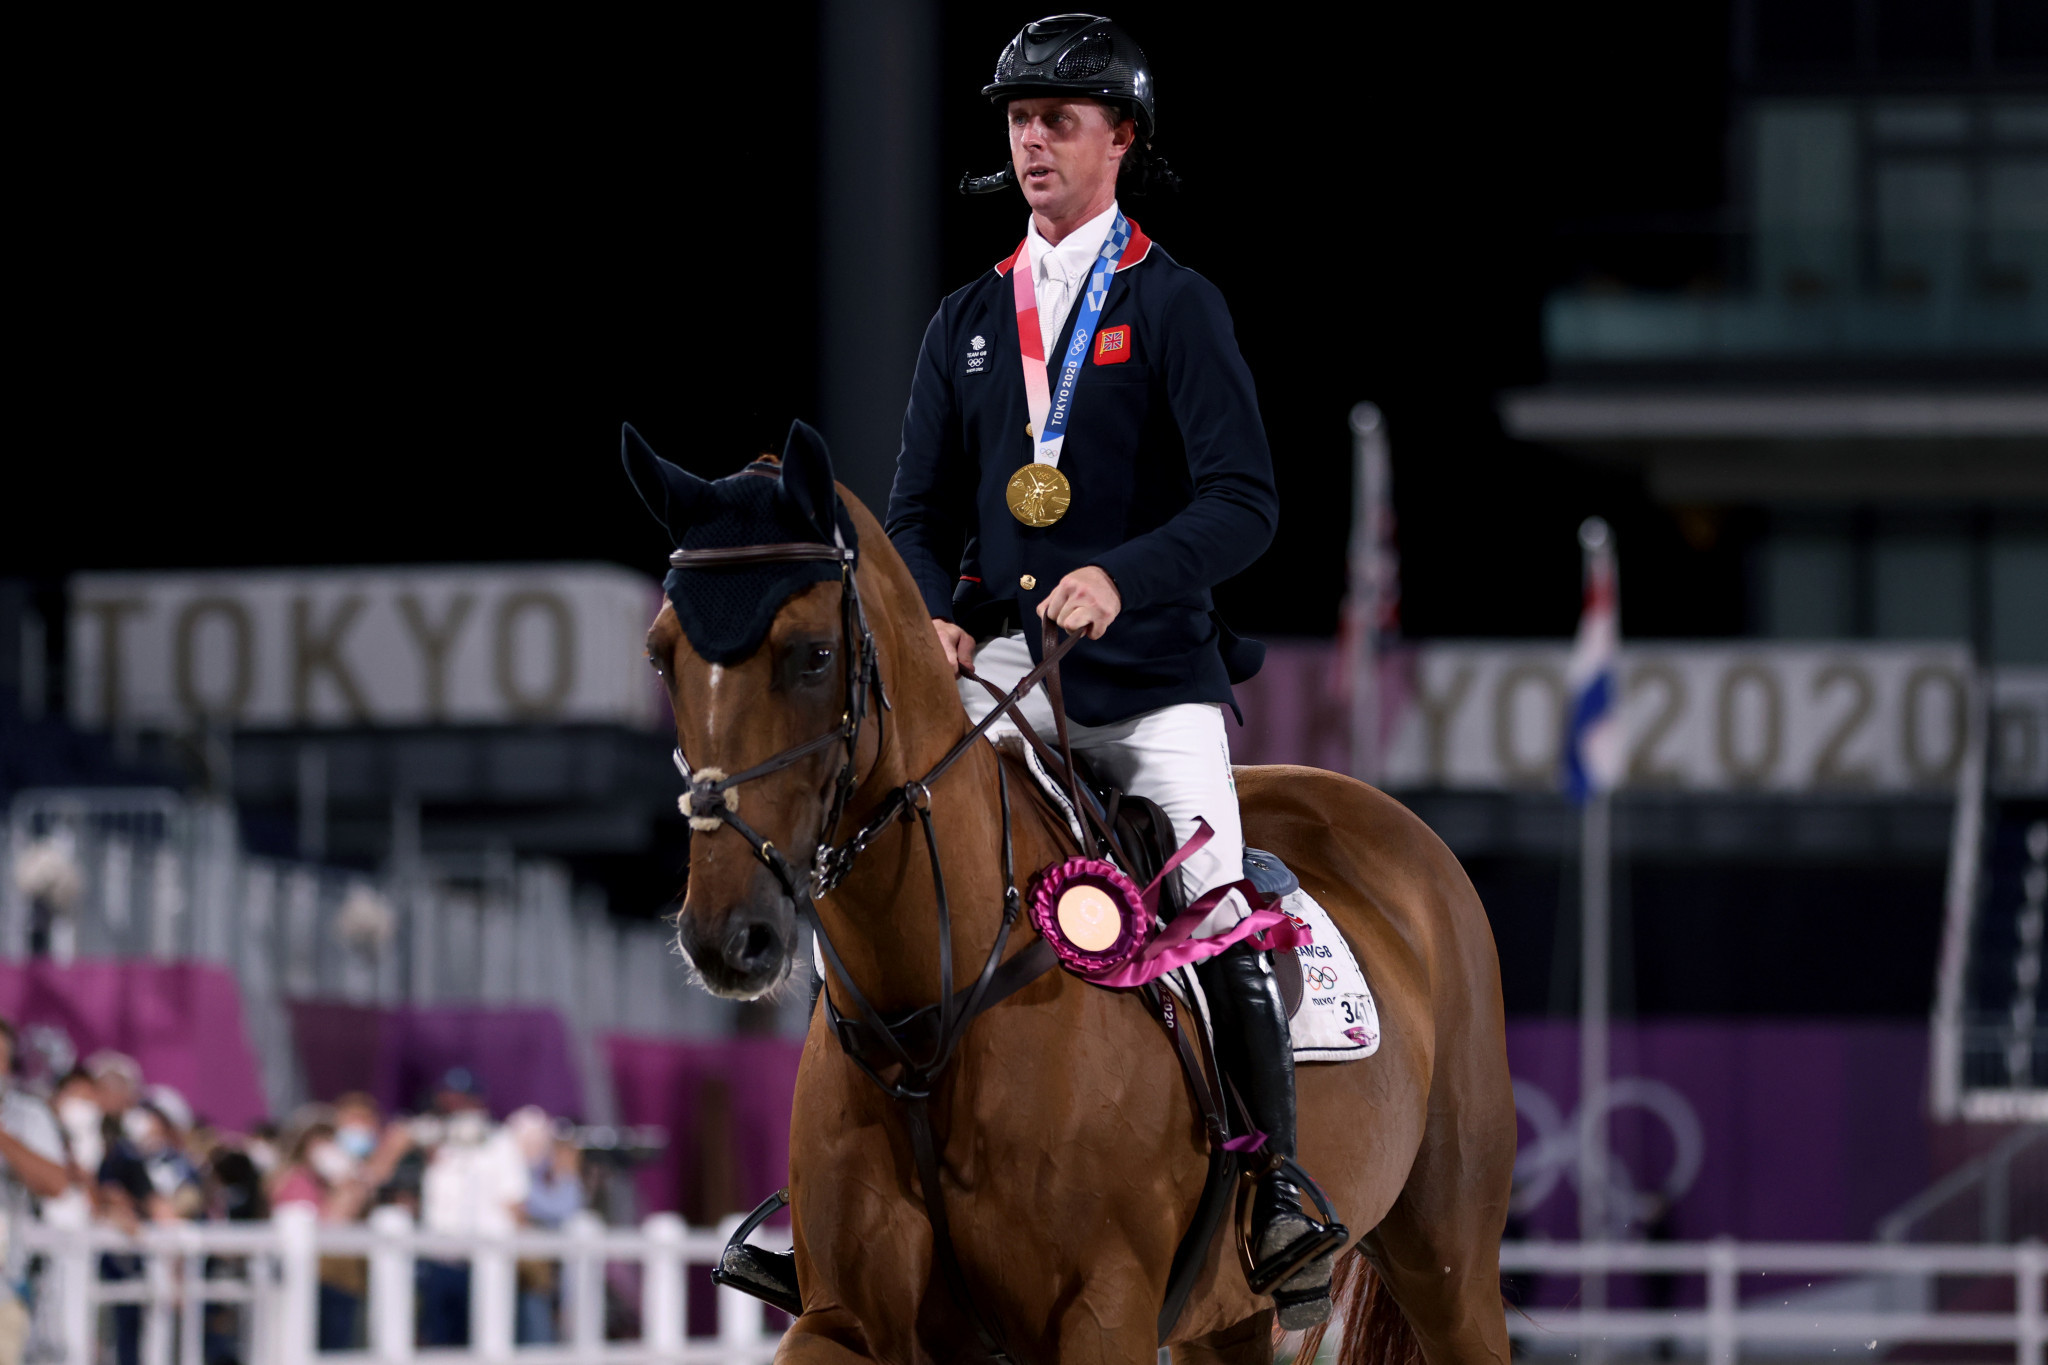 Six Olympic medallists in action at LGCT Grand Prix in London